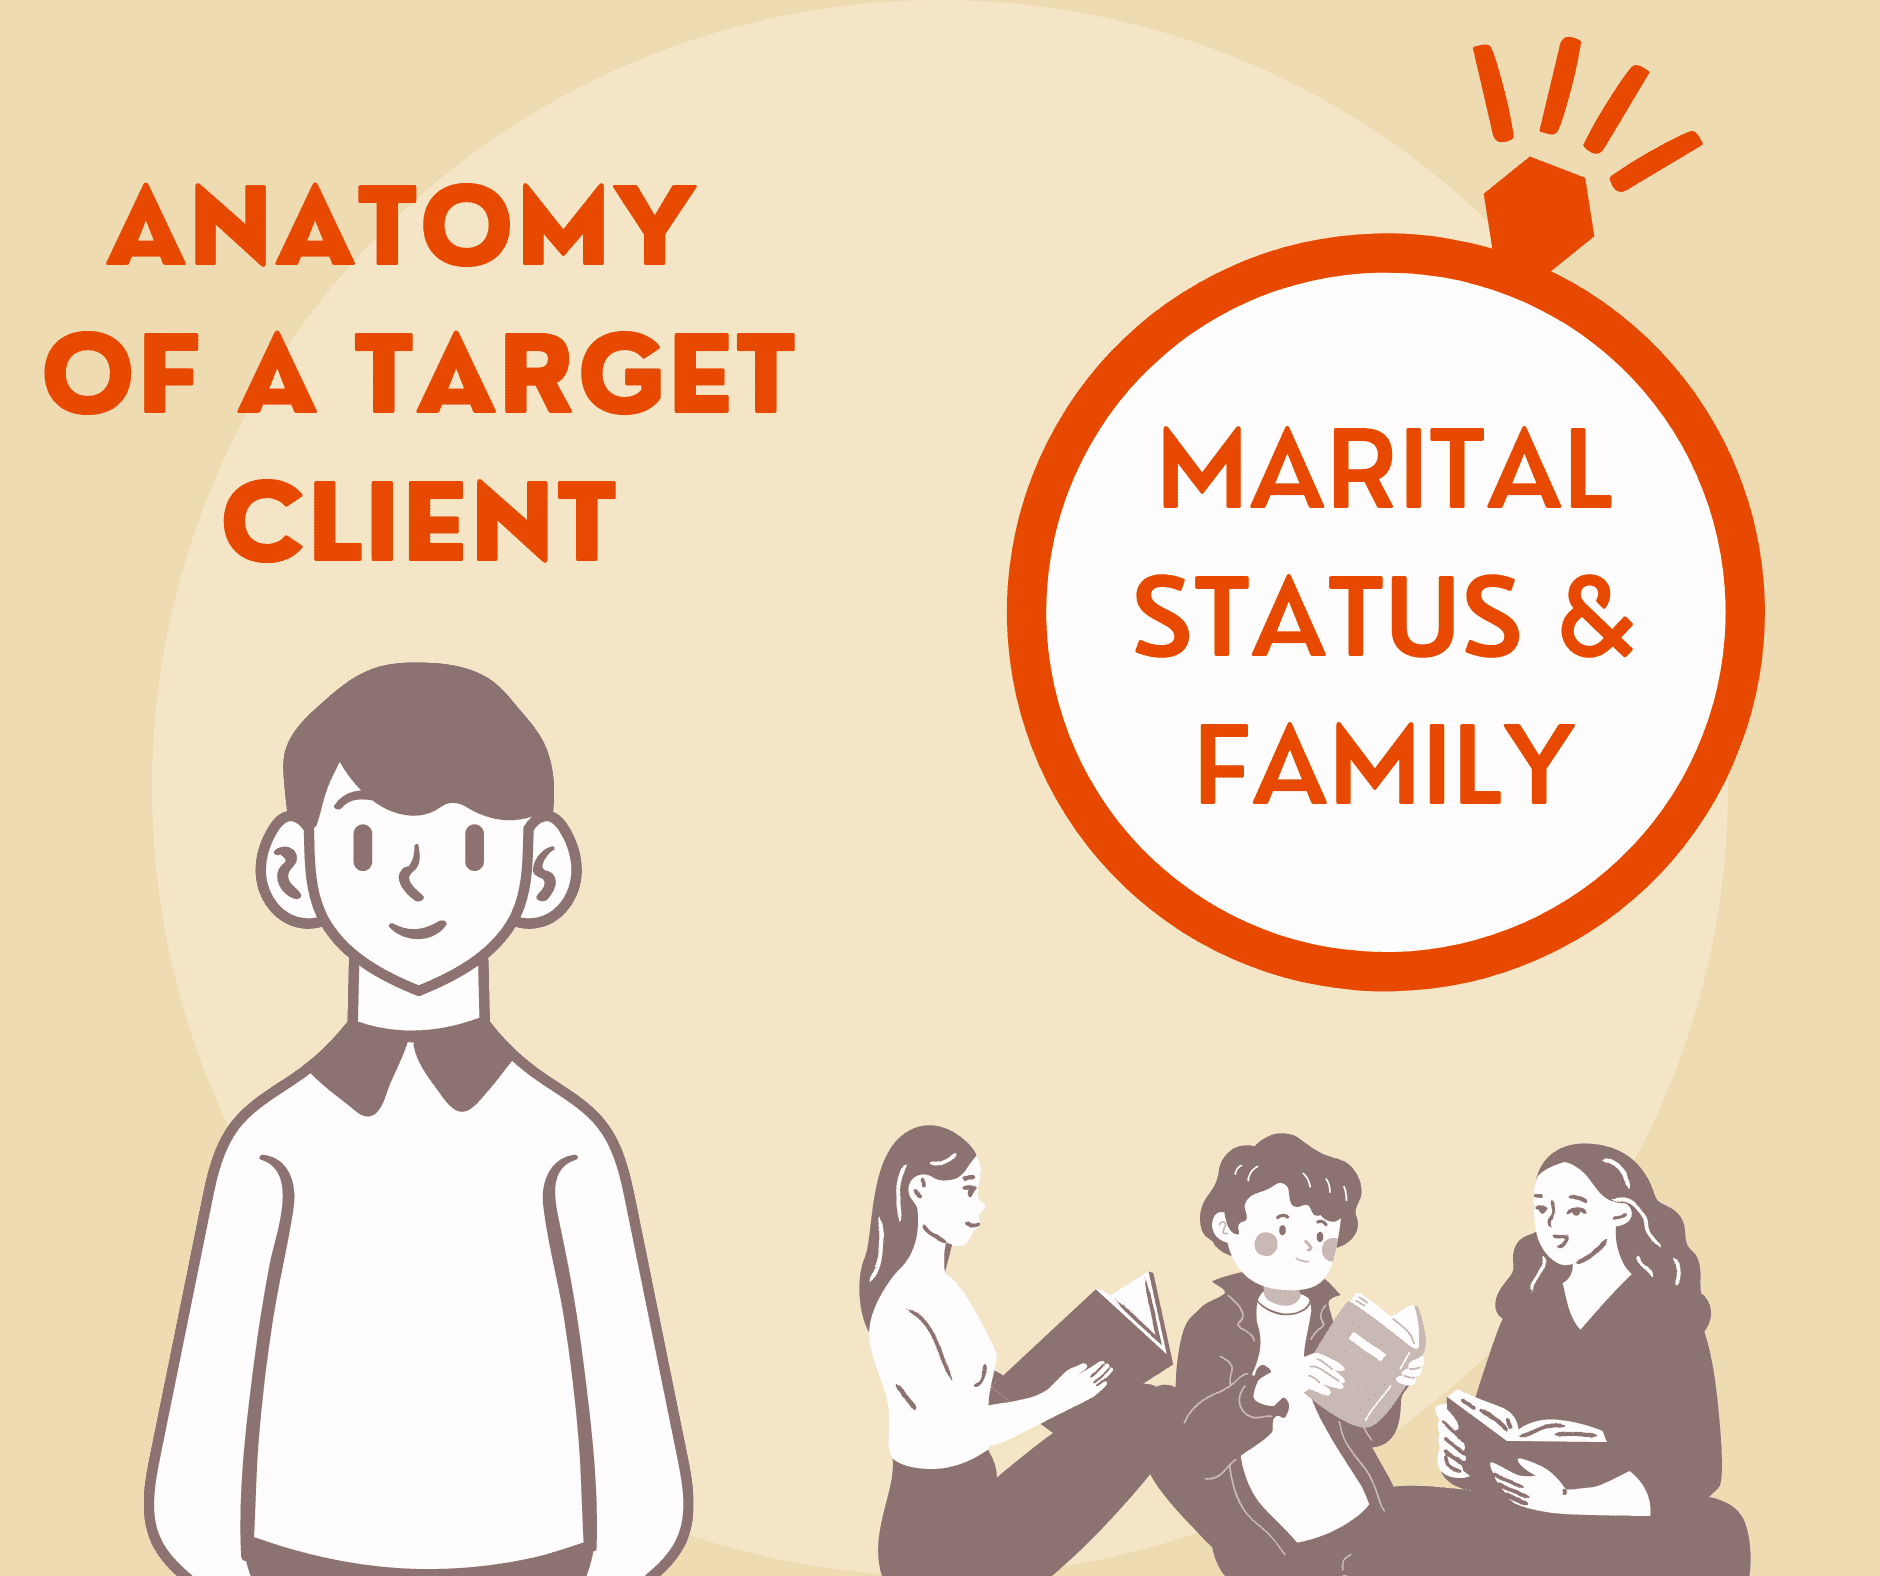 Marital Status and Family - Anatomy of a Target Client